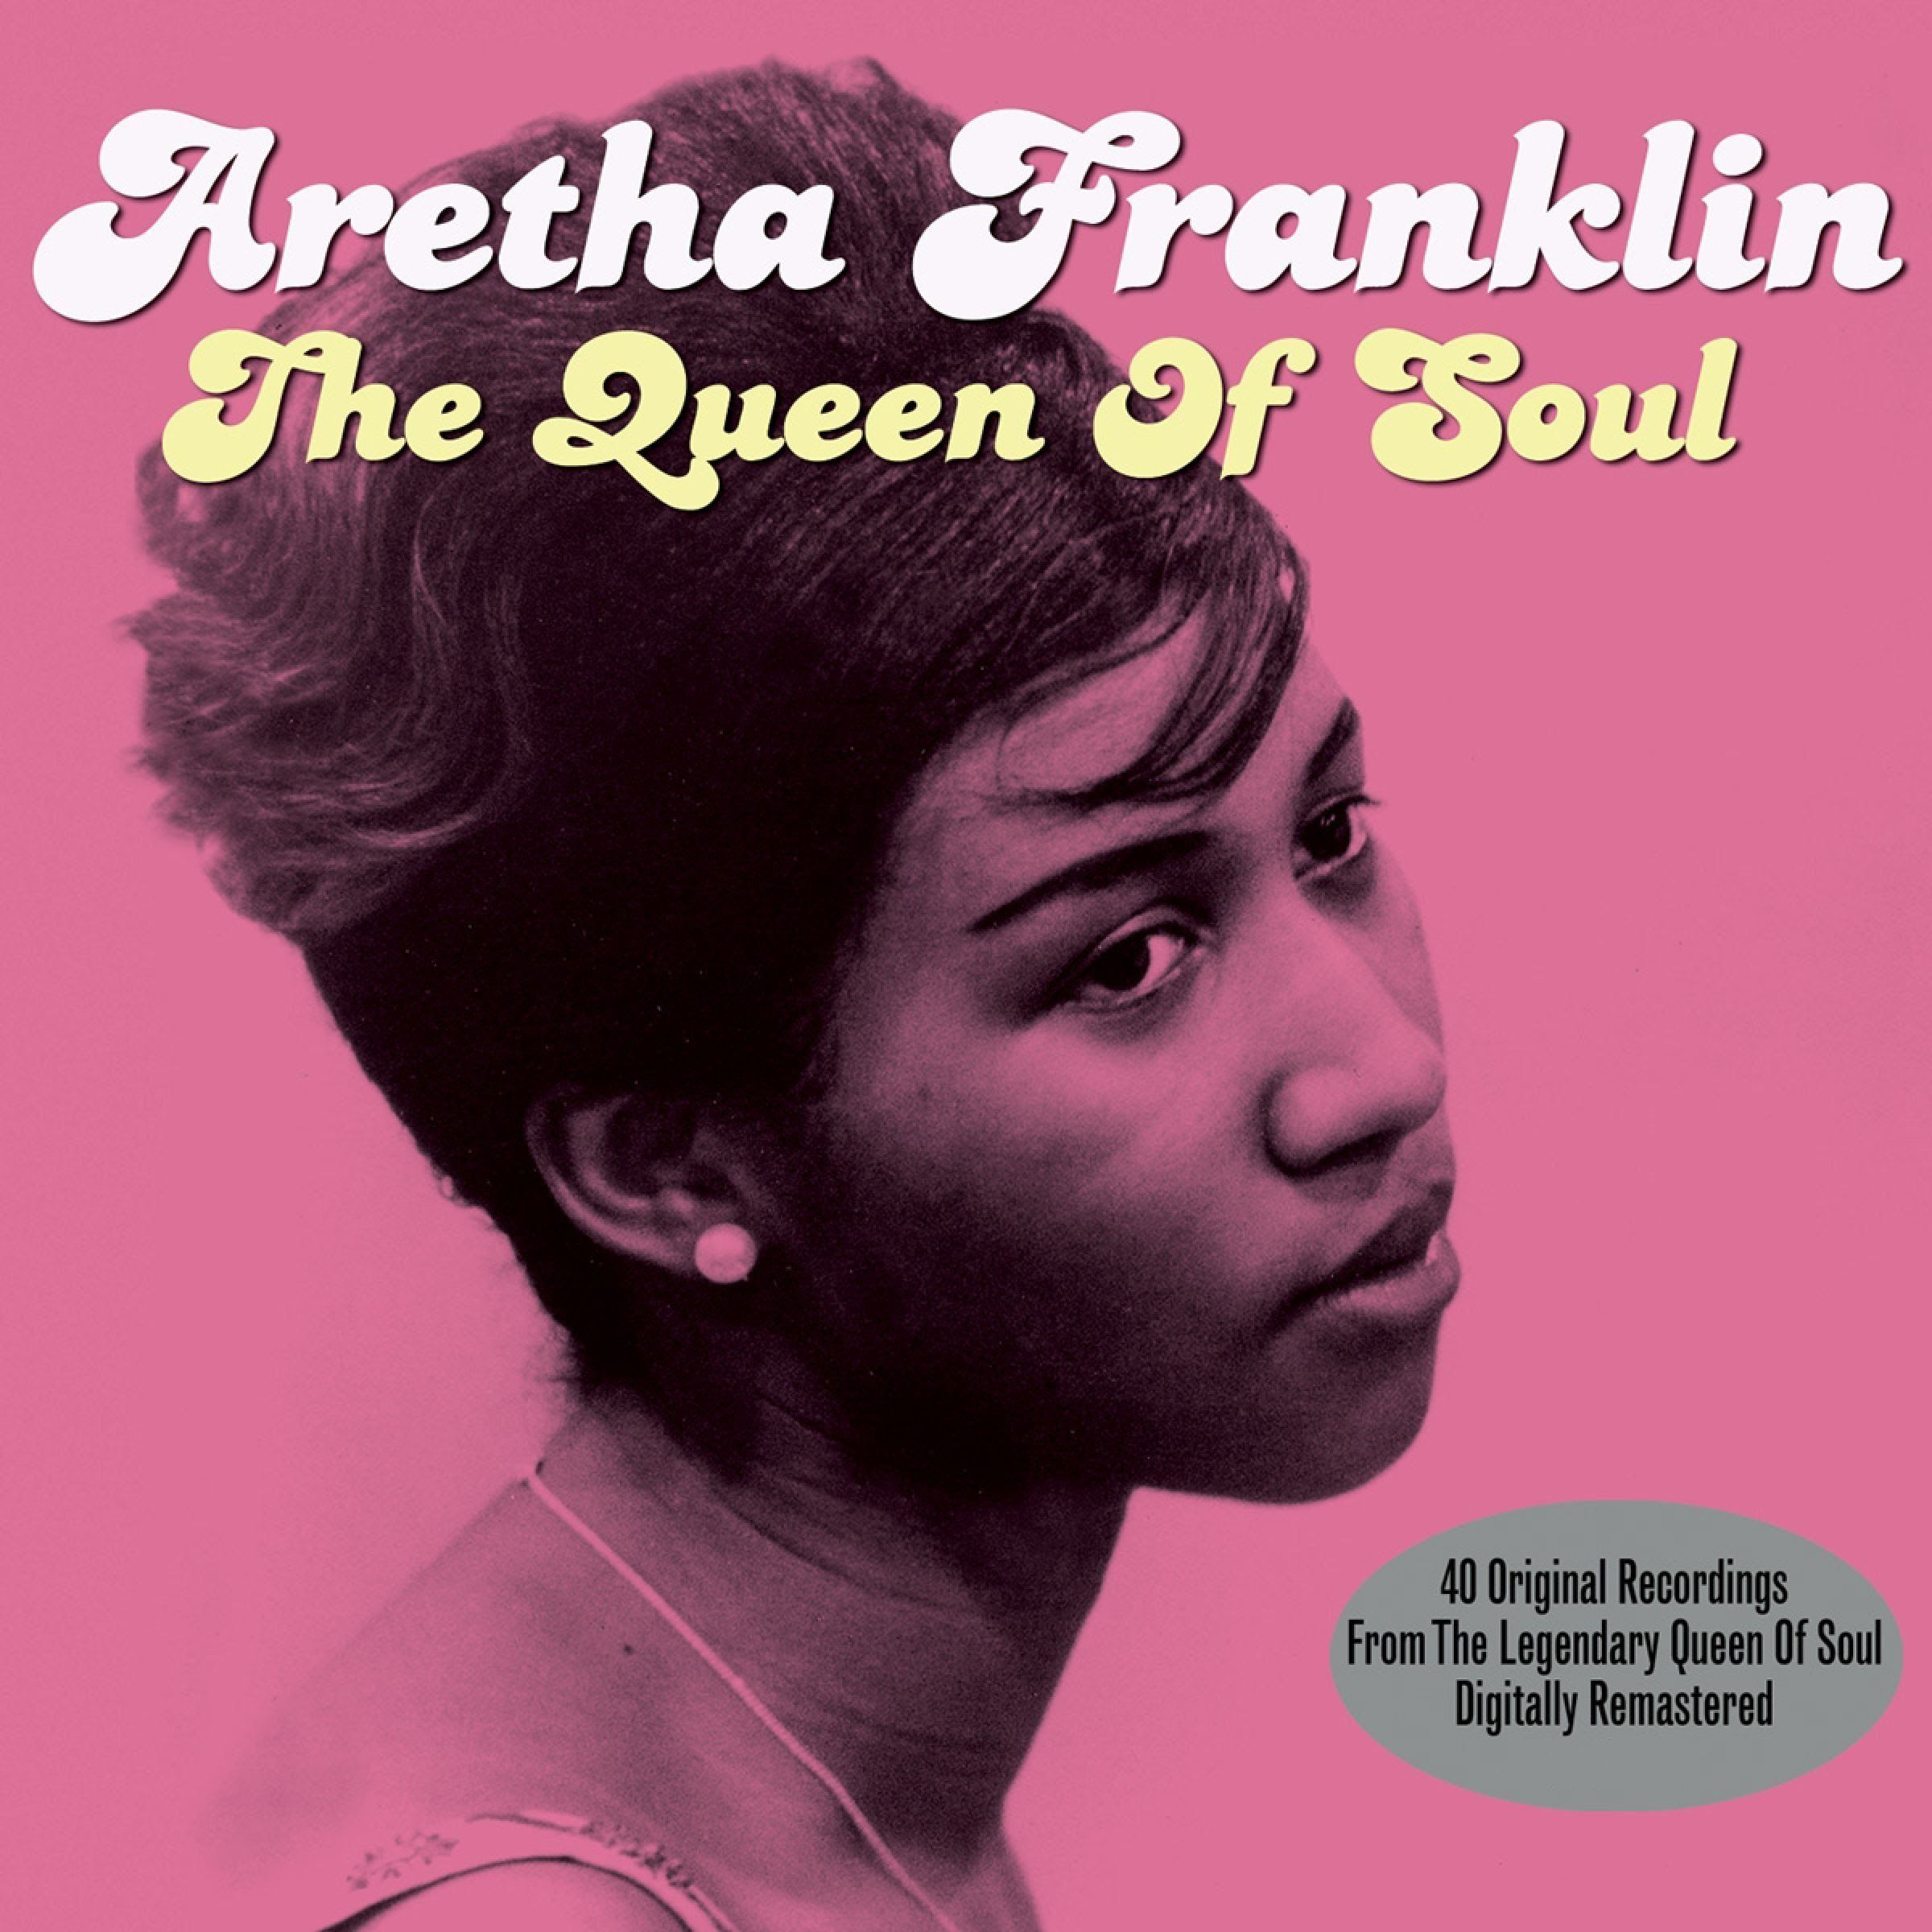 Aretha Franklin The Queen Of Soul Not Now Music Full Album